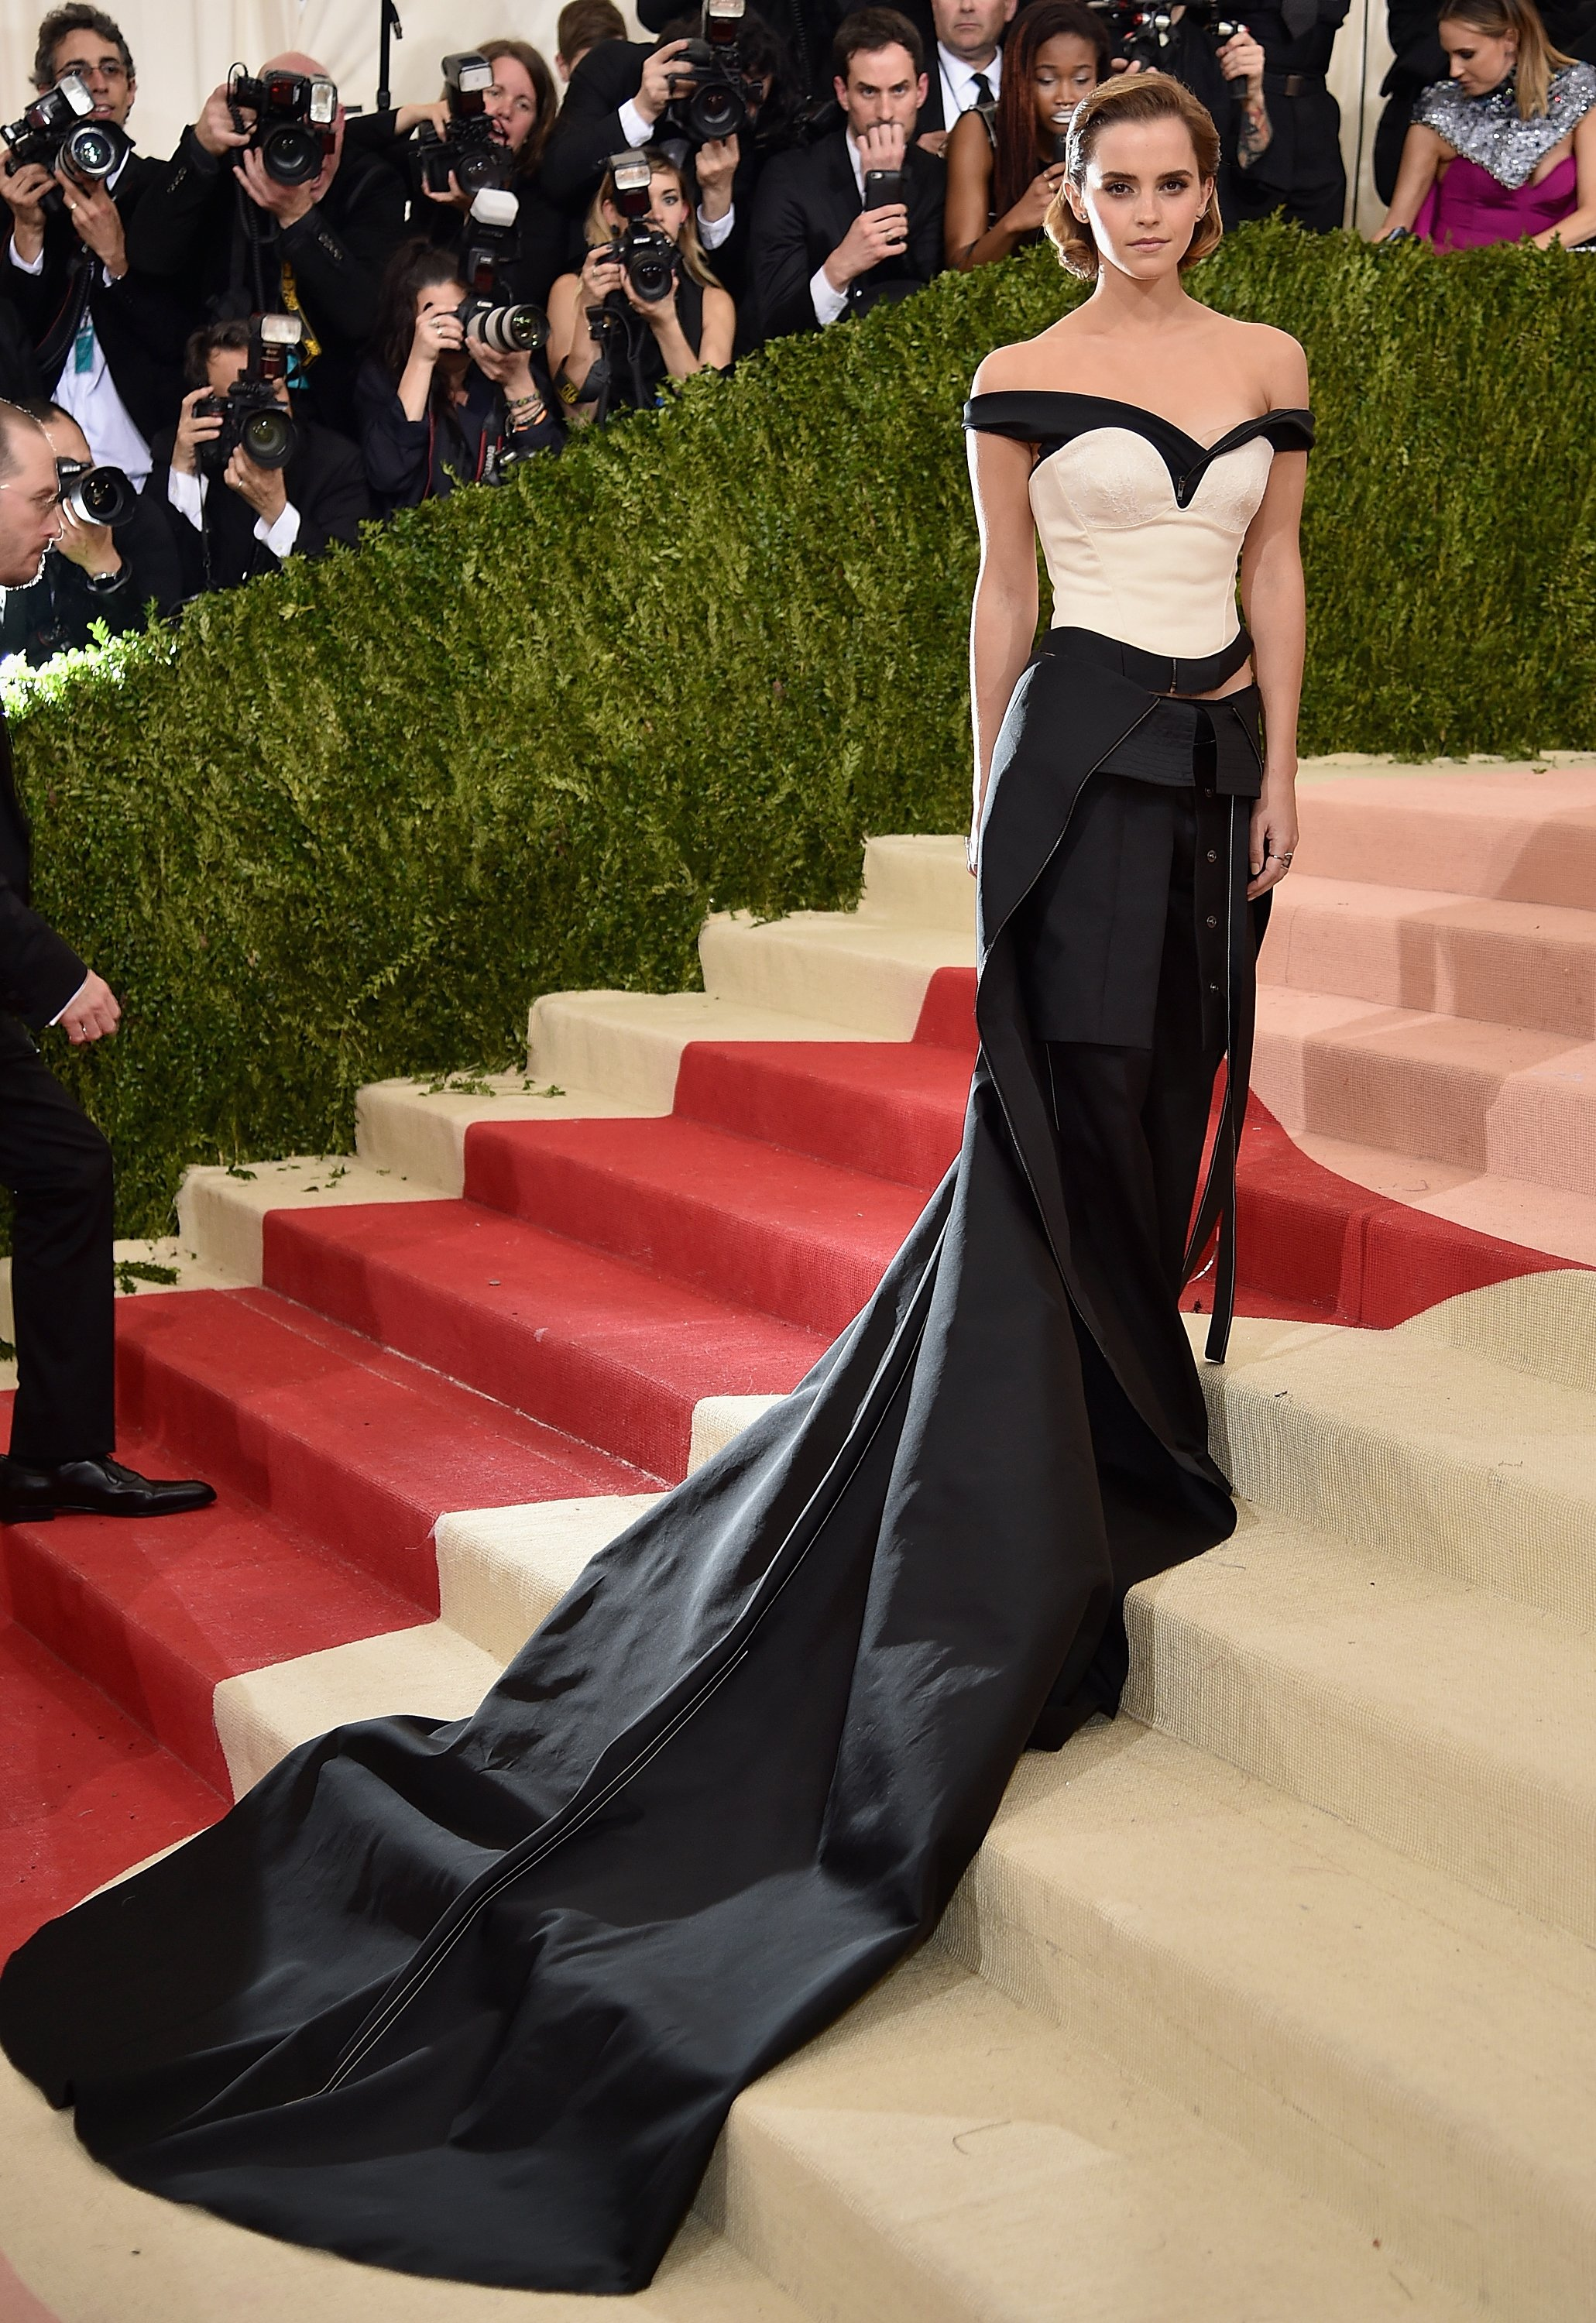 Emma Watson's stuns on the Met Gala Red Carpet in a classy dress fabricated from recycled Plastic Bottles_Image 1